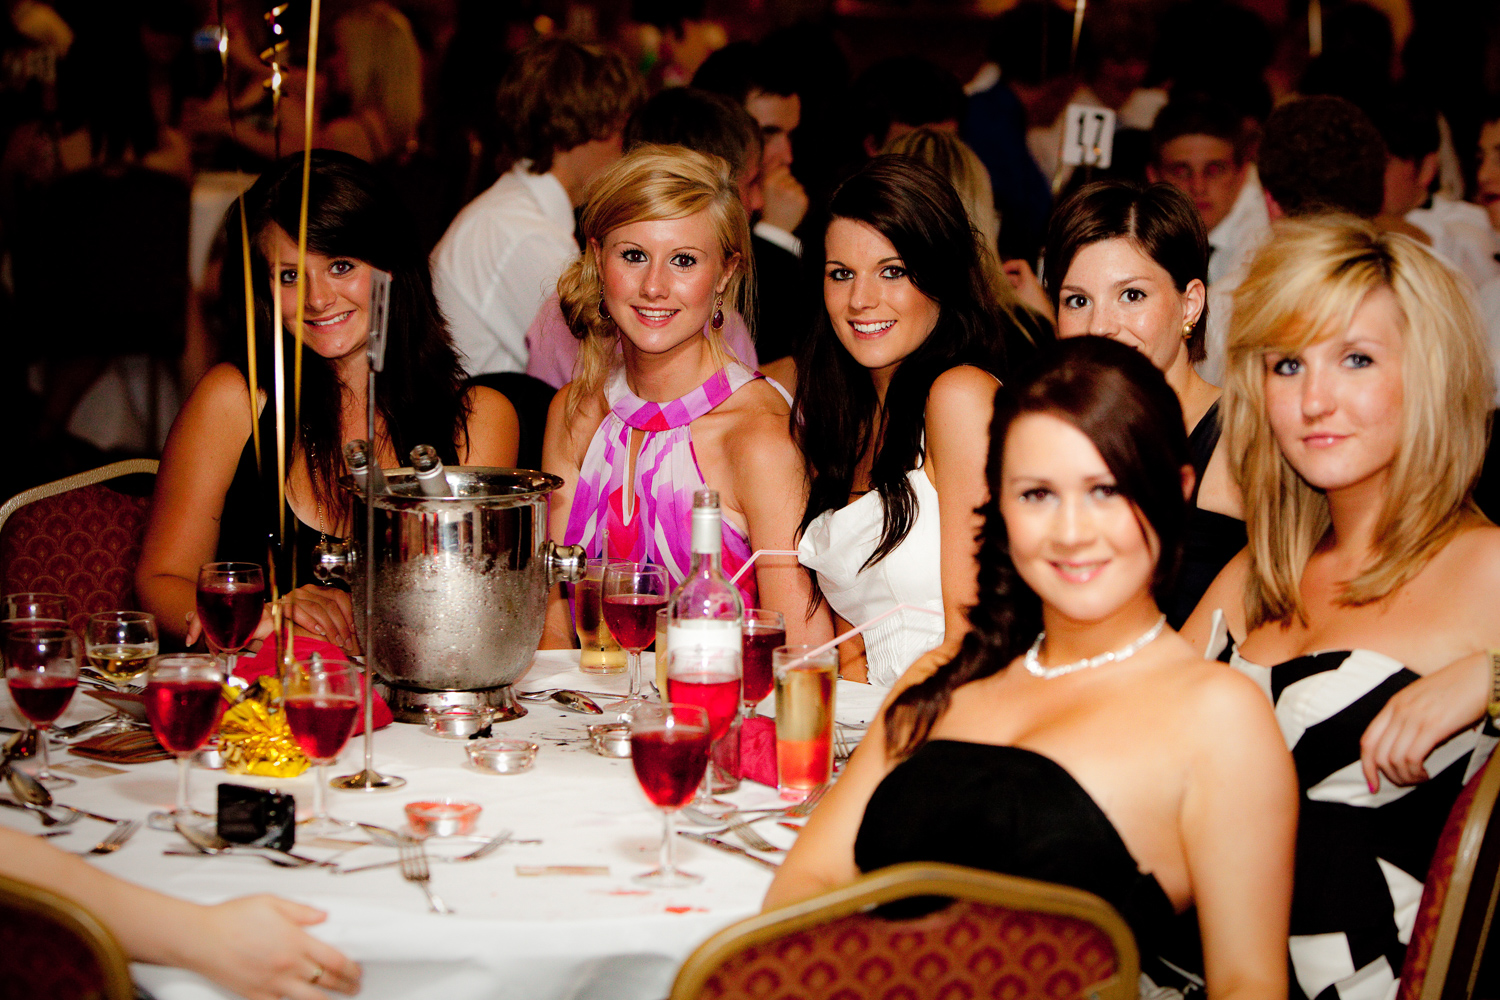 newcastle event party photos